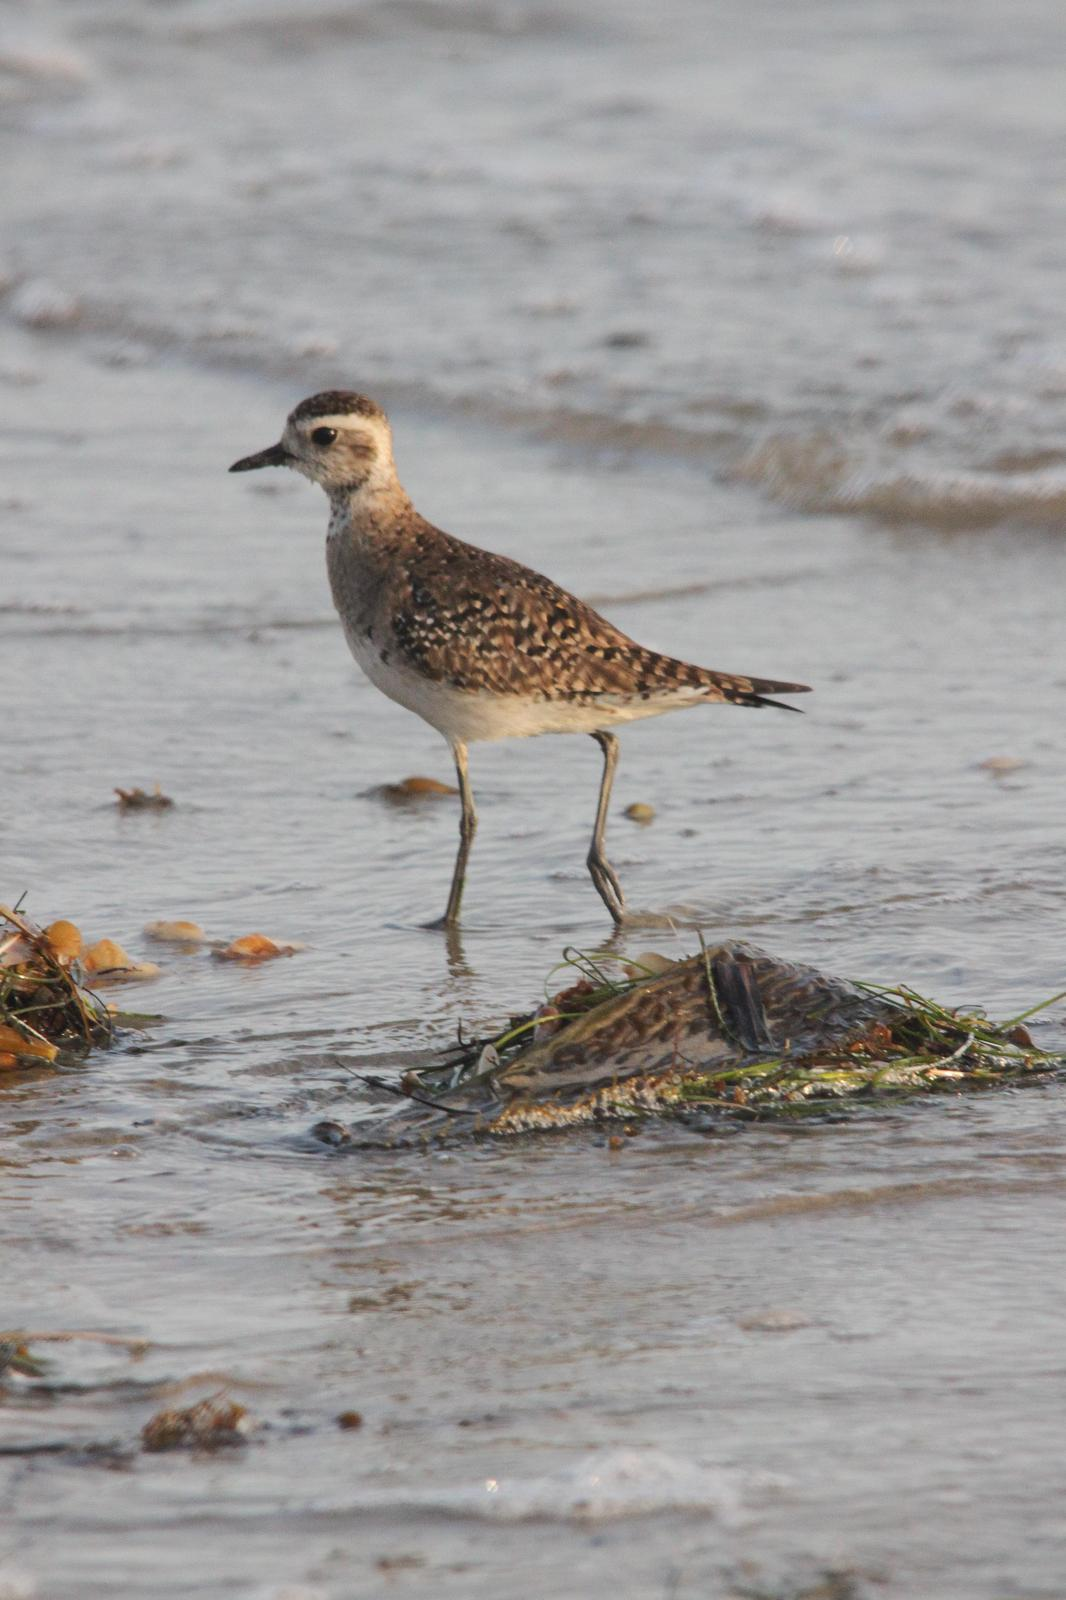 American Golden-Plover Photo by Tom Ford-Hutchinson